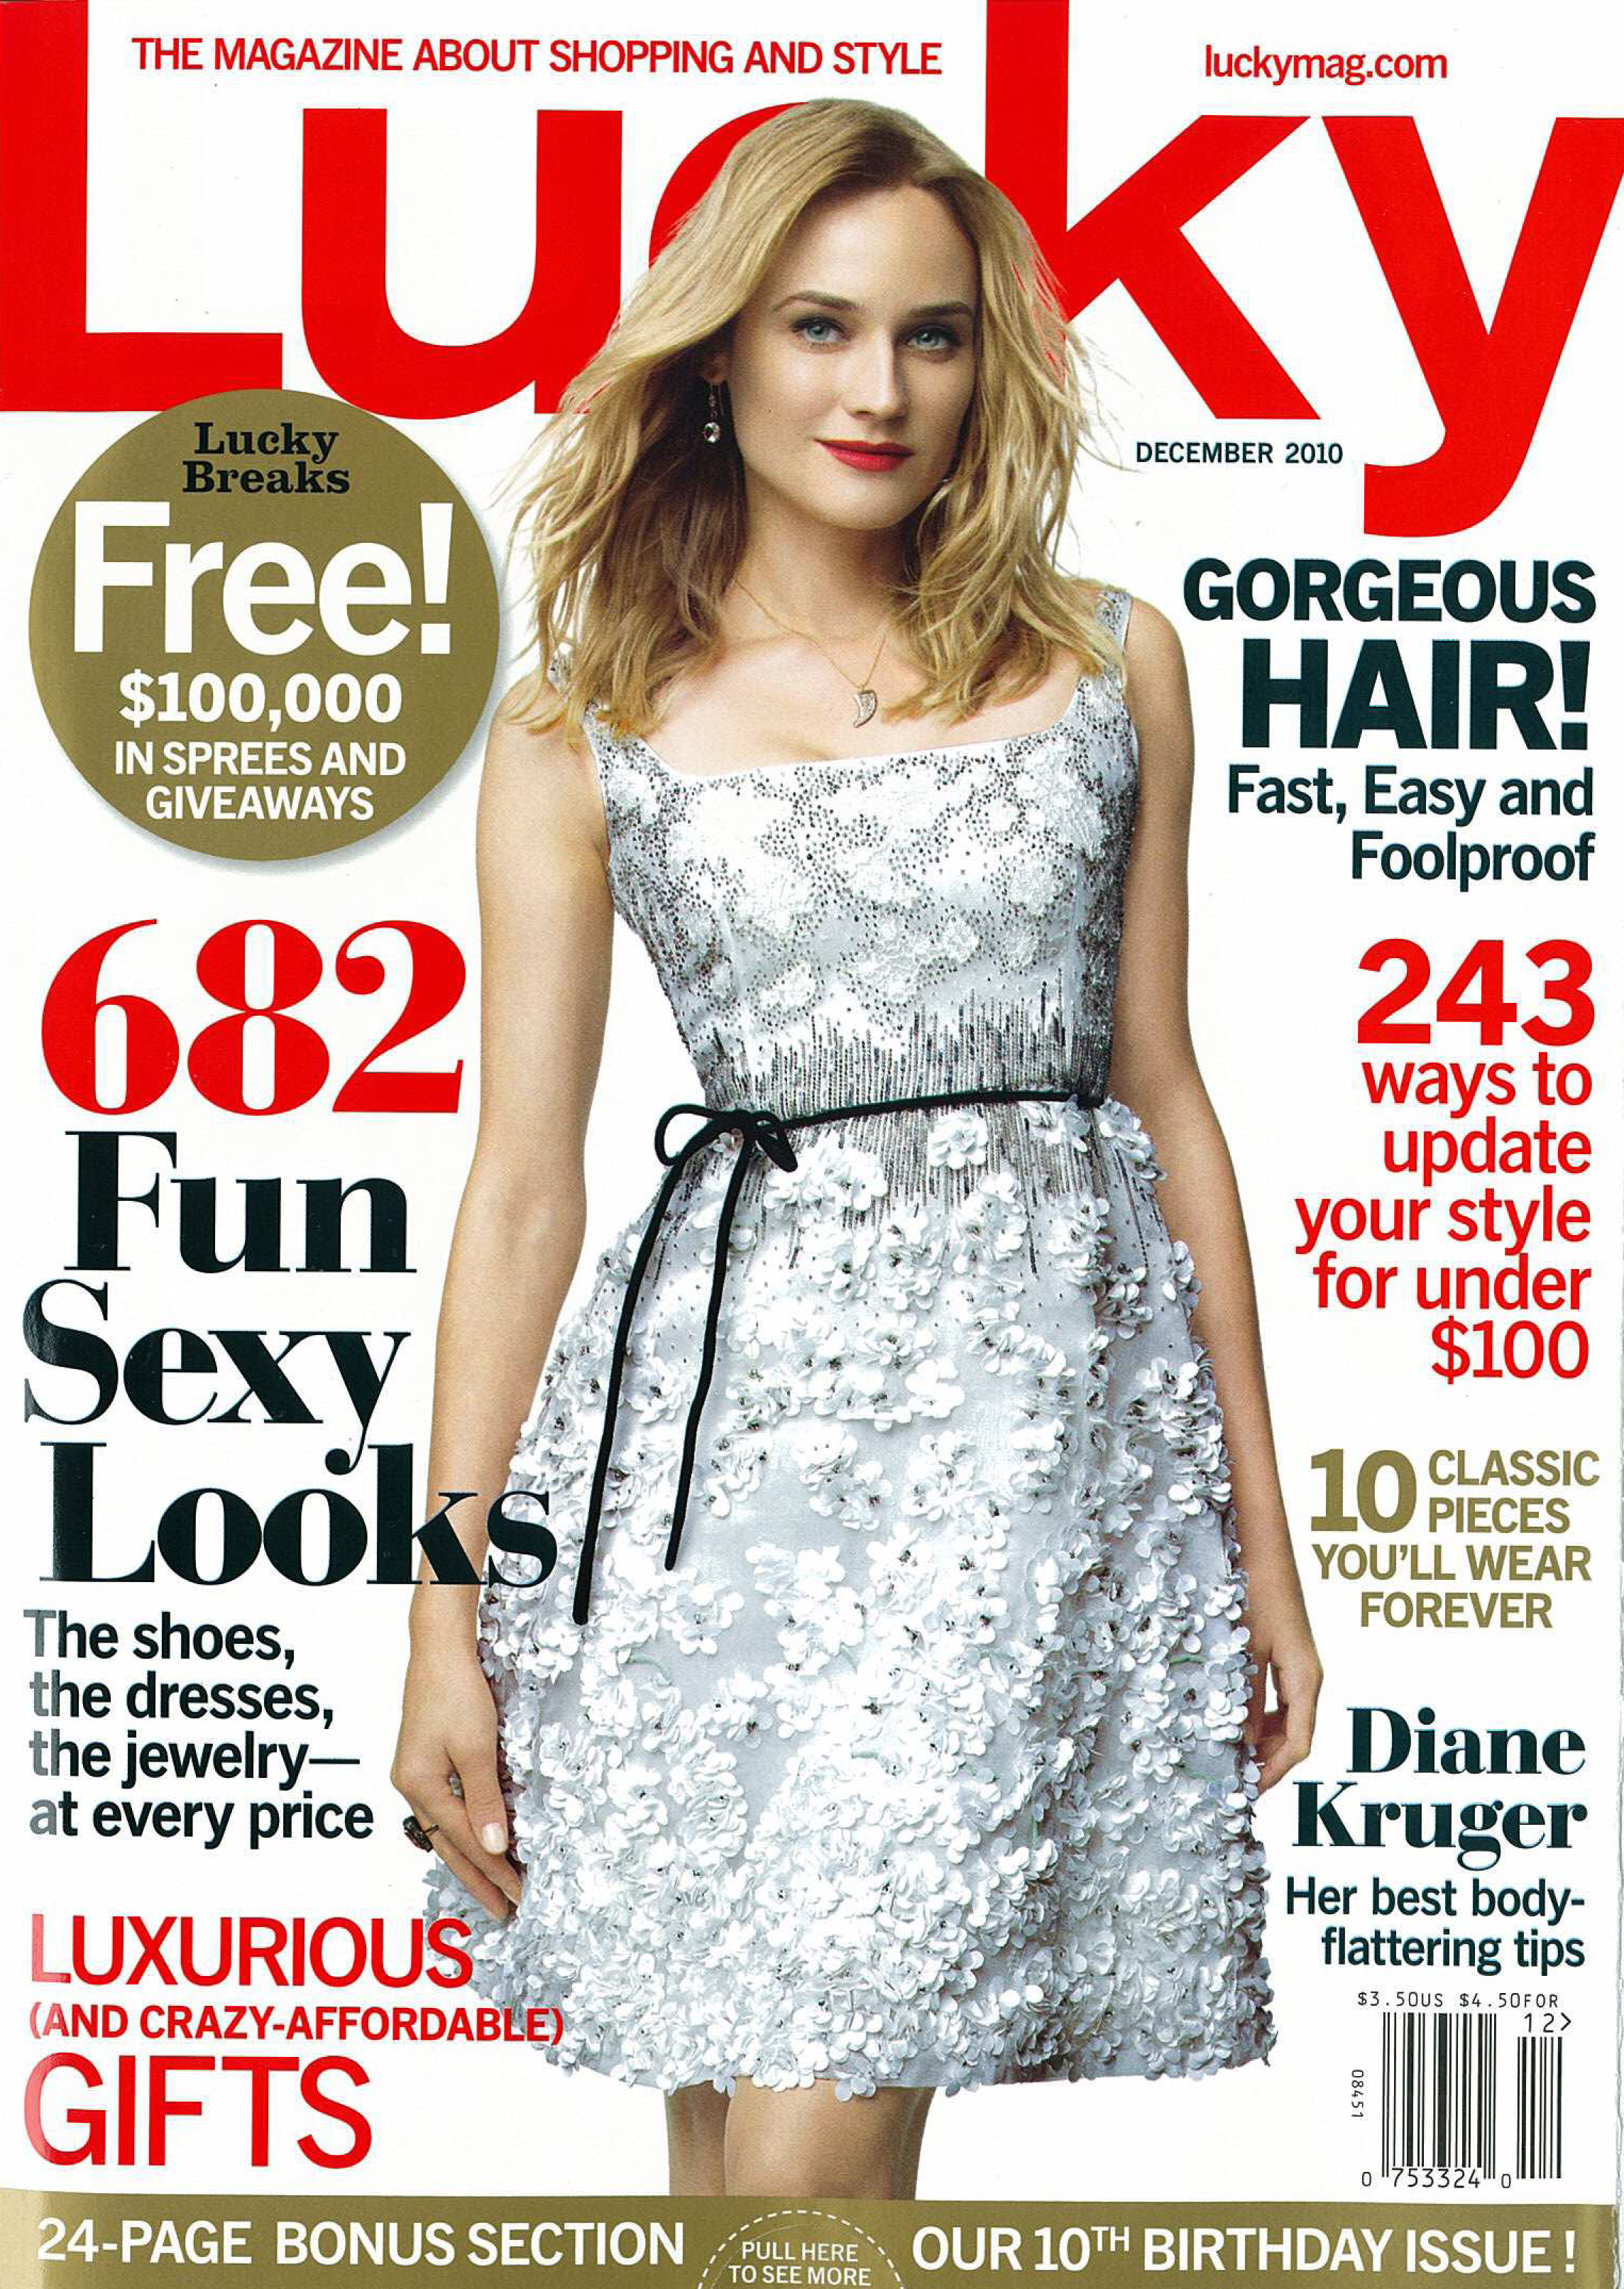 Lucky Magazine May 11: Diane Kruger In Lucky Magazine